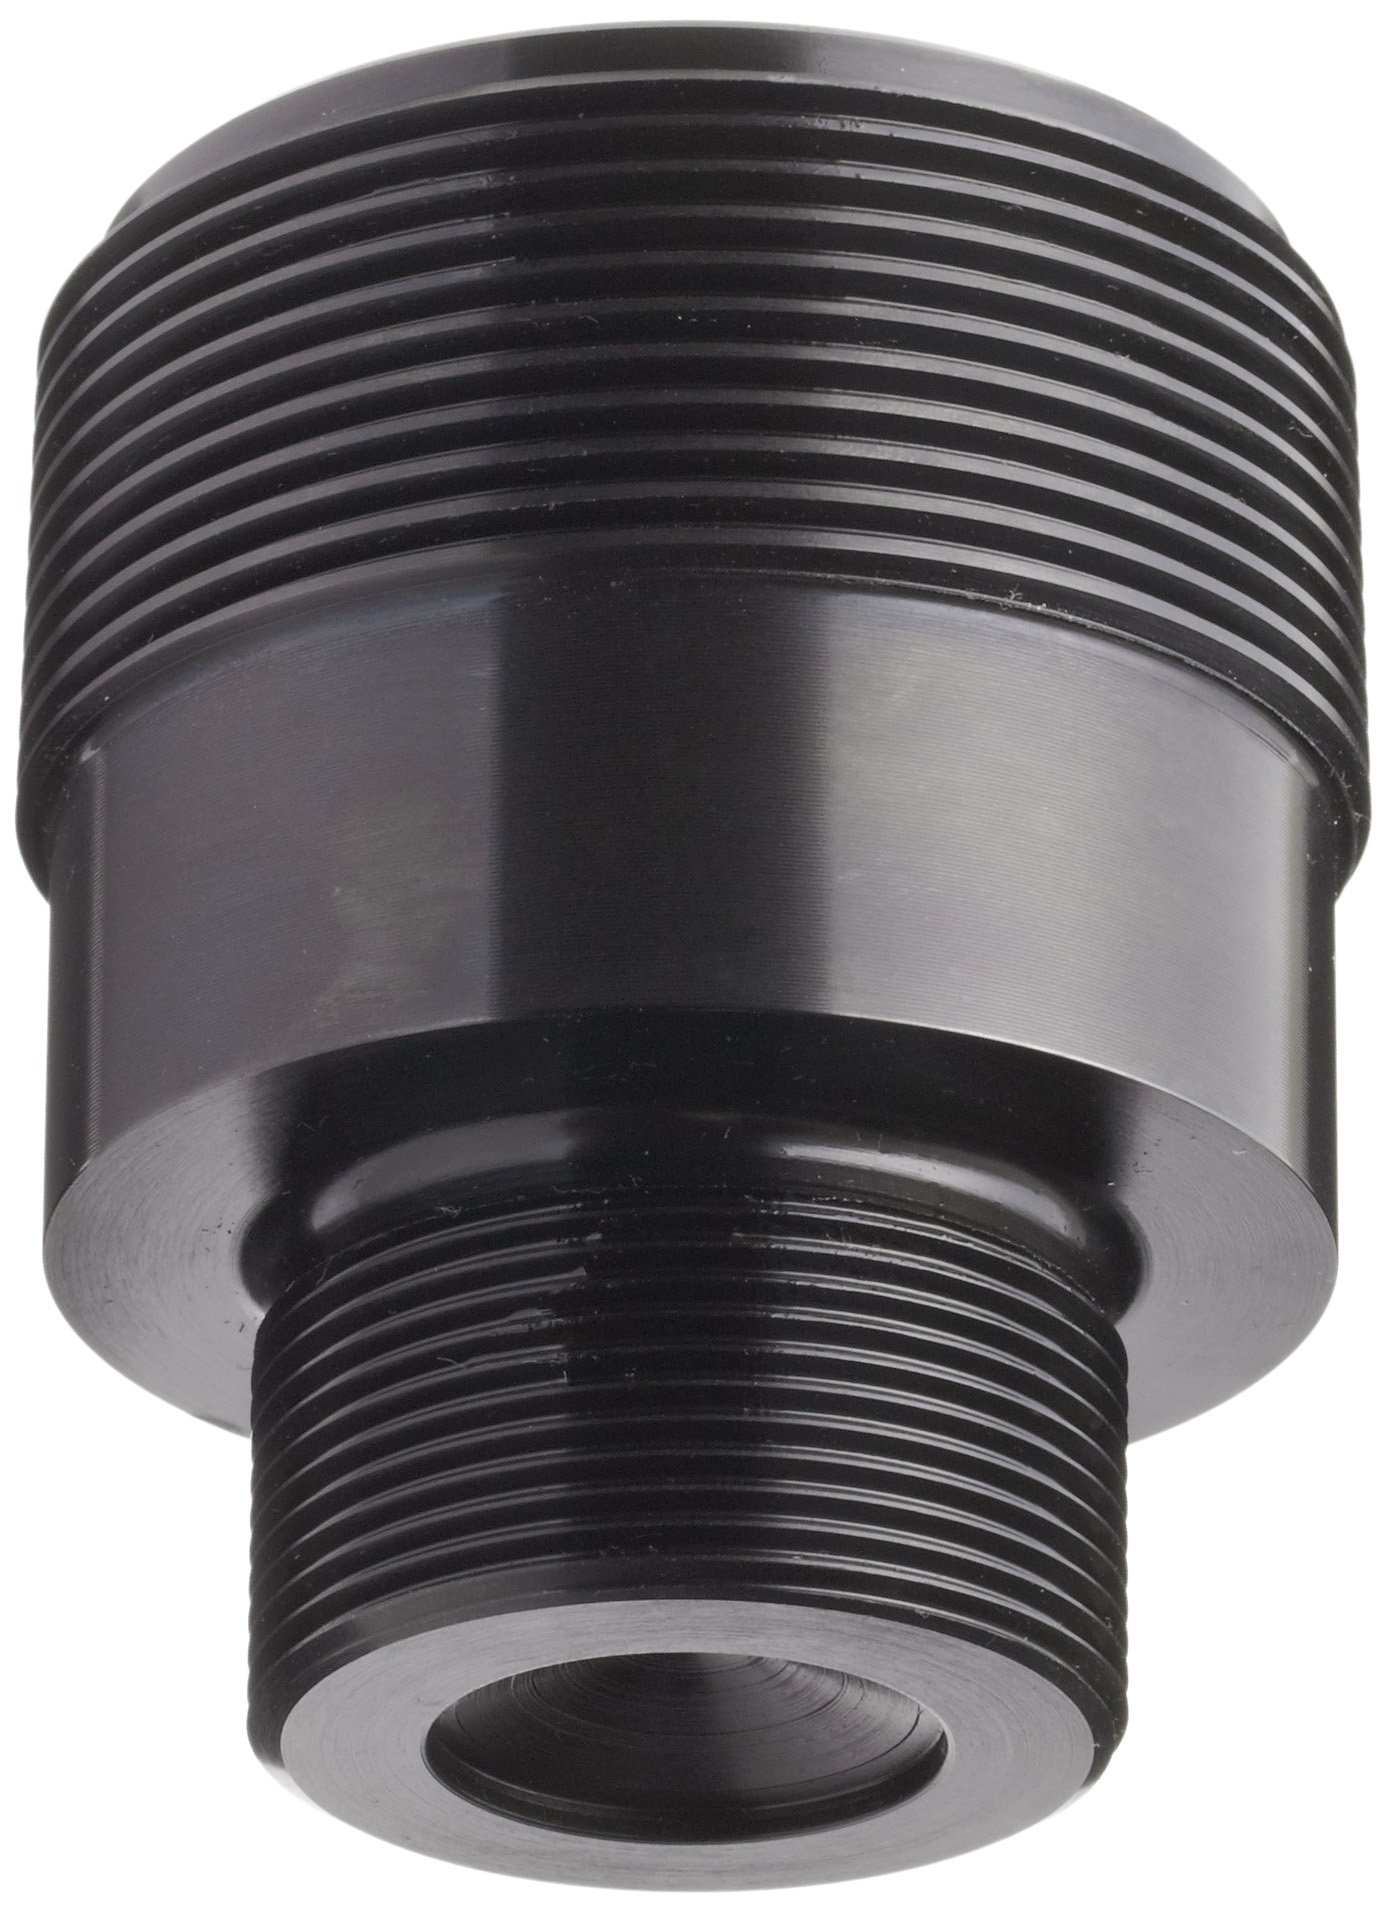 Enerpac A-28 Threaded Male Adaptor with 12.5 Ton Capacity